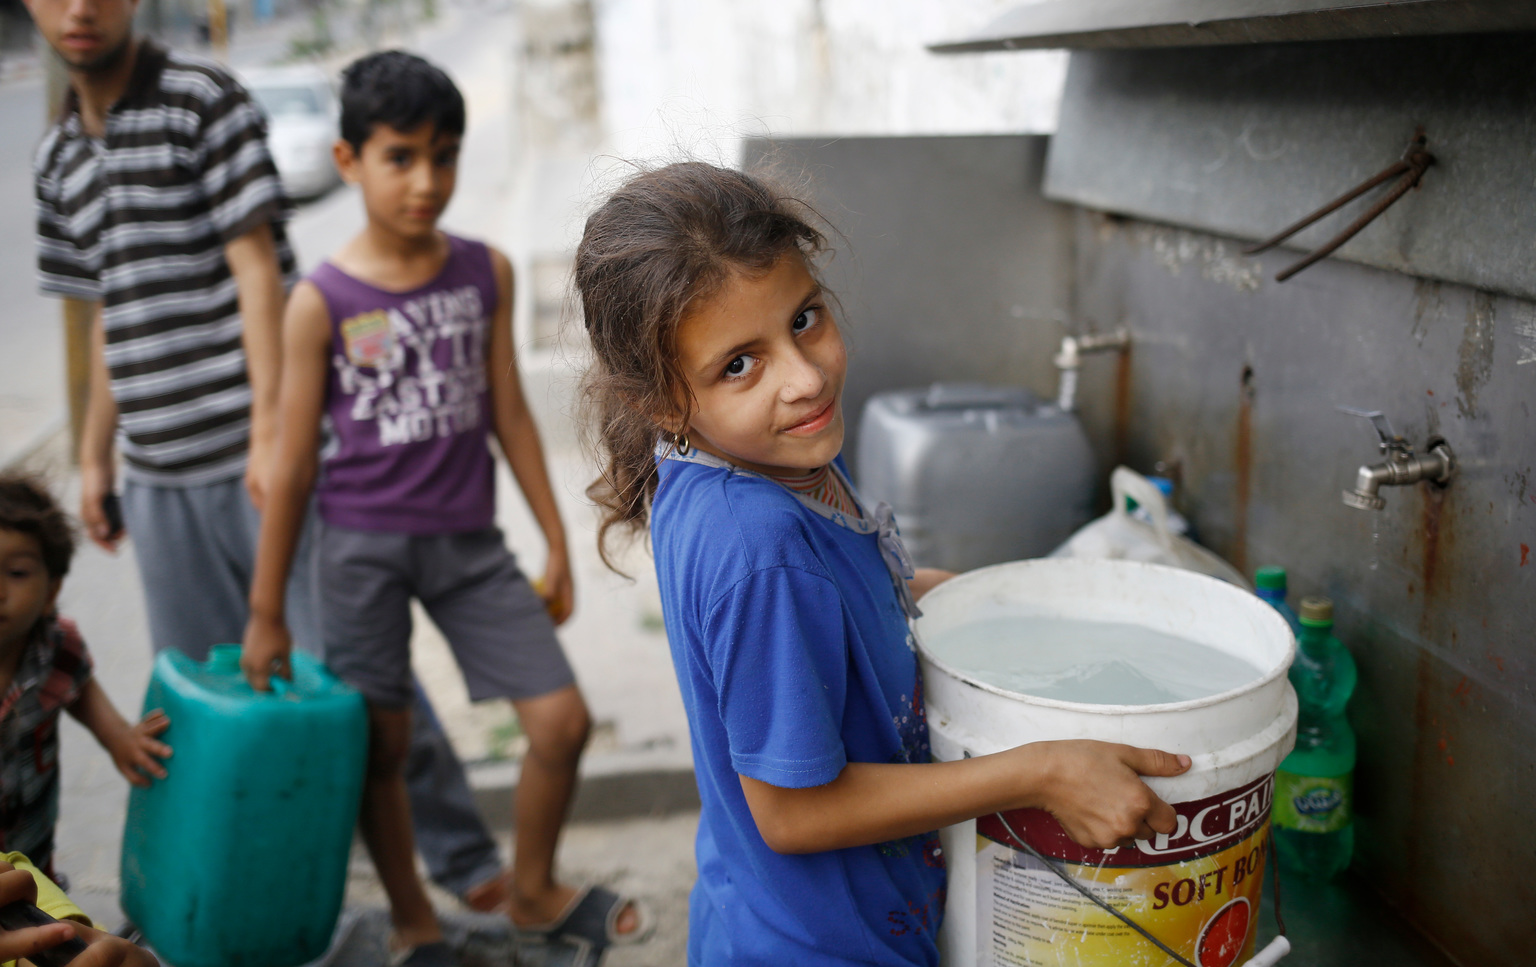 Searching for clean water in Gaza - UNICEF Connect